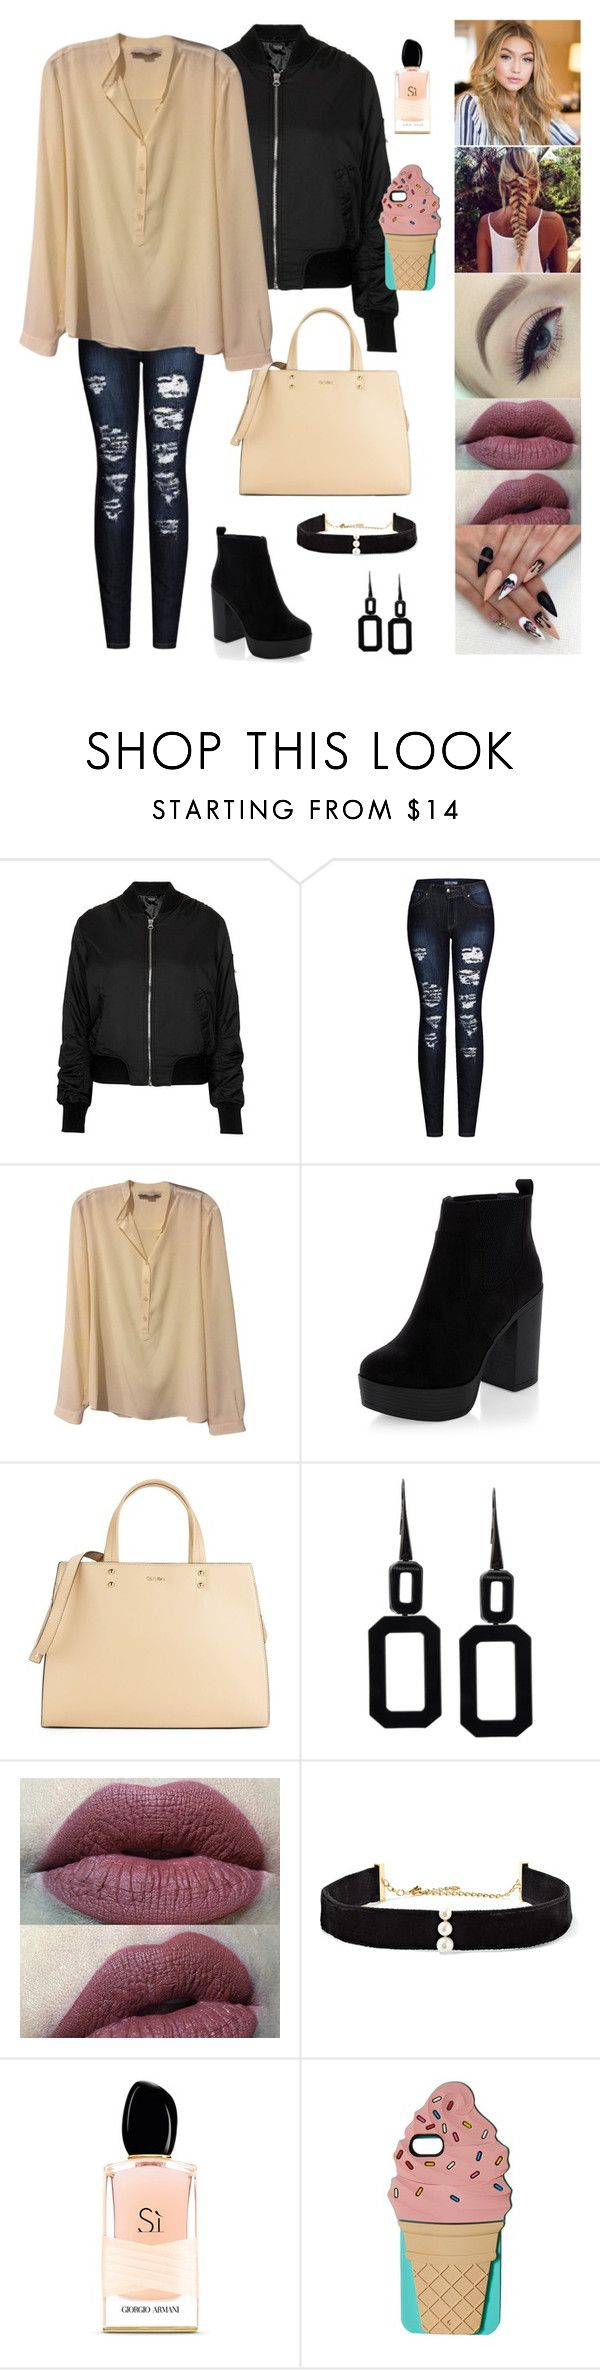 """Dark Angel Tome 2 Chapter 42"" by hissexylips ❤ liked on Polyvore featuring Topshop, 2LUV, STELLA McCARTNEY, New Look, Calvin Klein, Rebecca, Anissa Kermiche, Armani Beauty and Kate Spade"